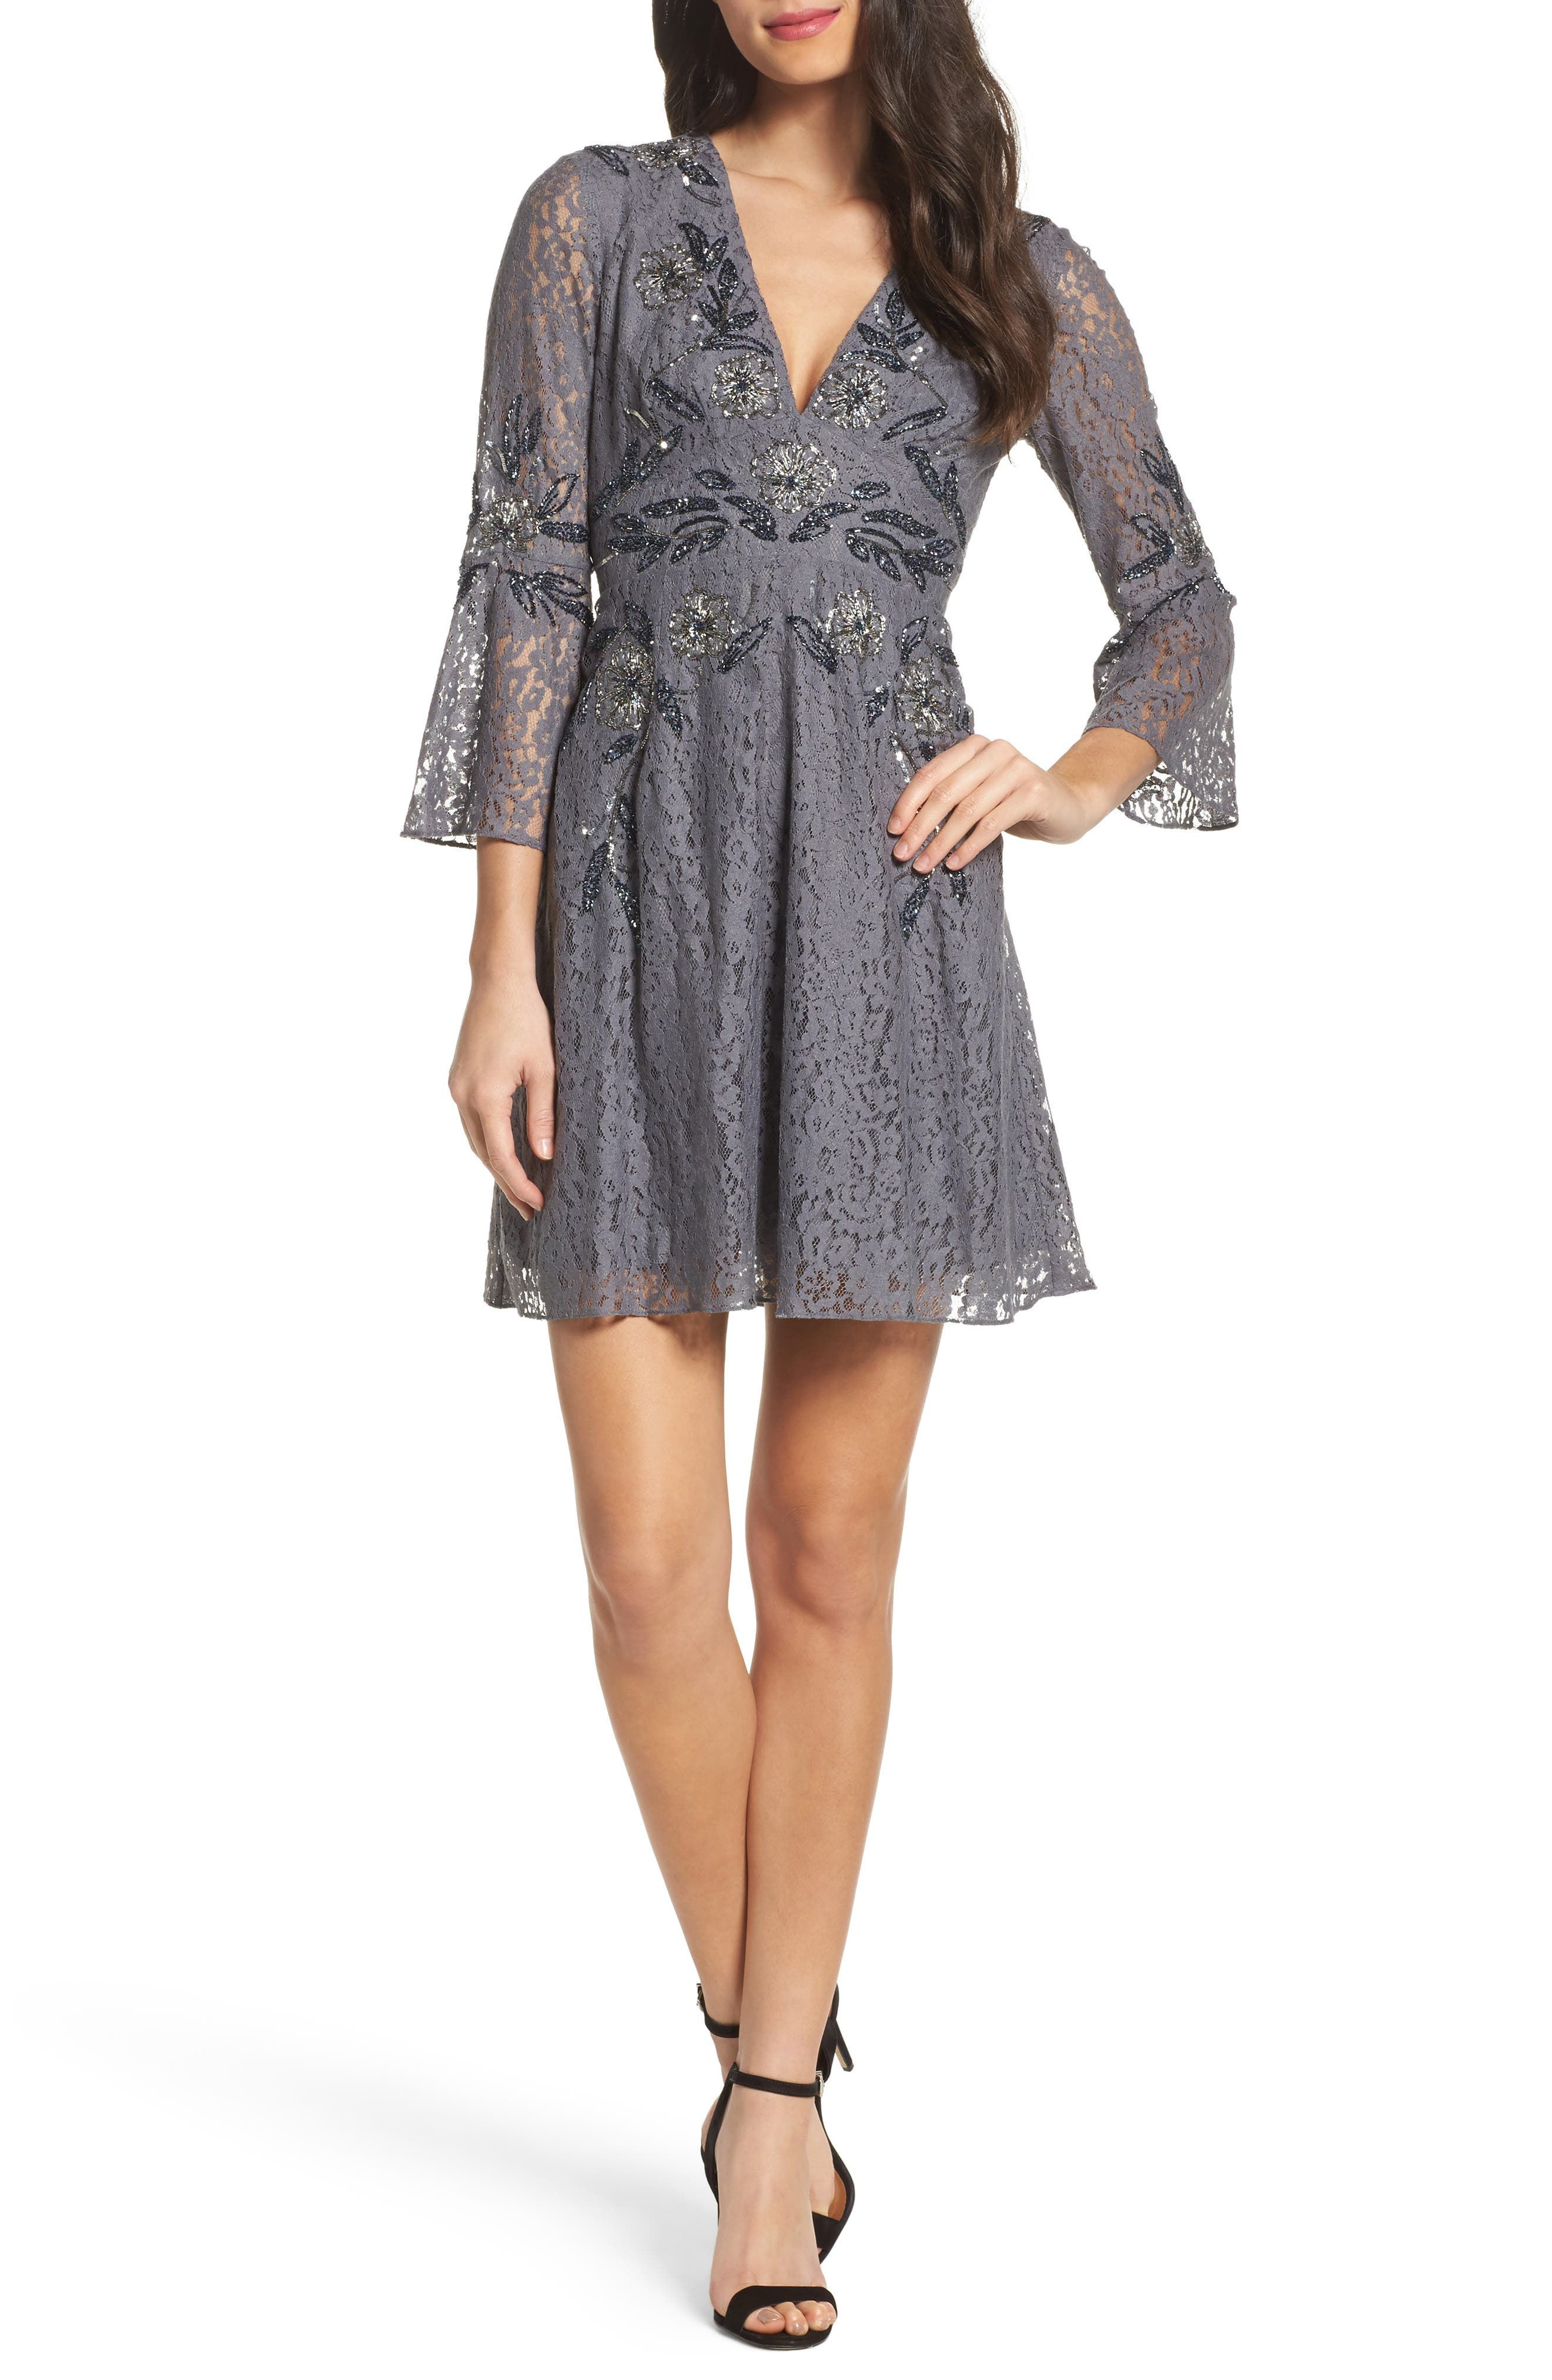 Alternate Image 1 Selected - French Connection Esme Shimmer Beaded Lace Dress